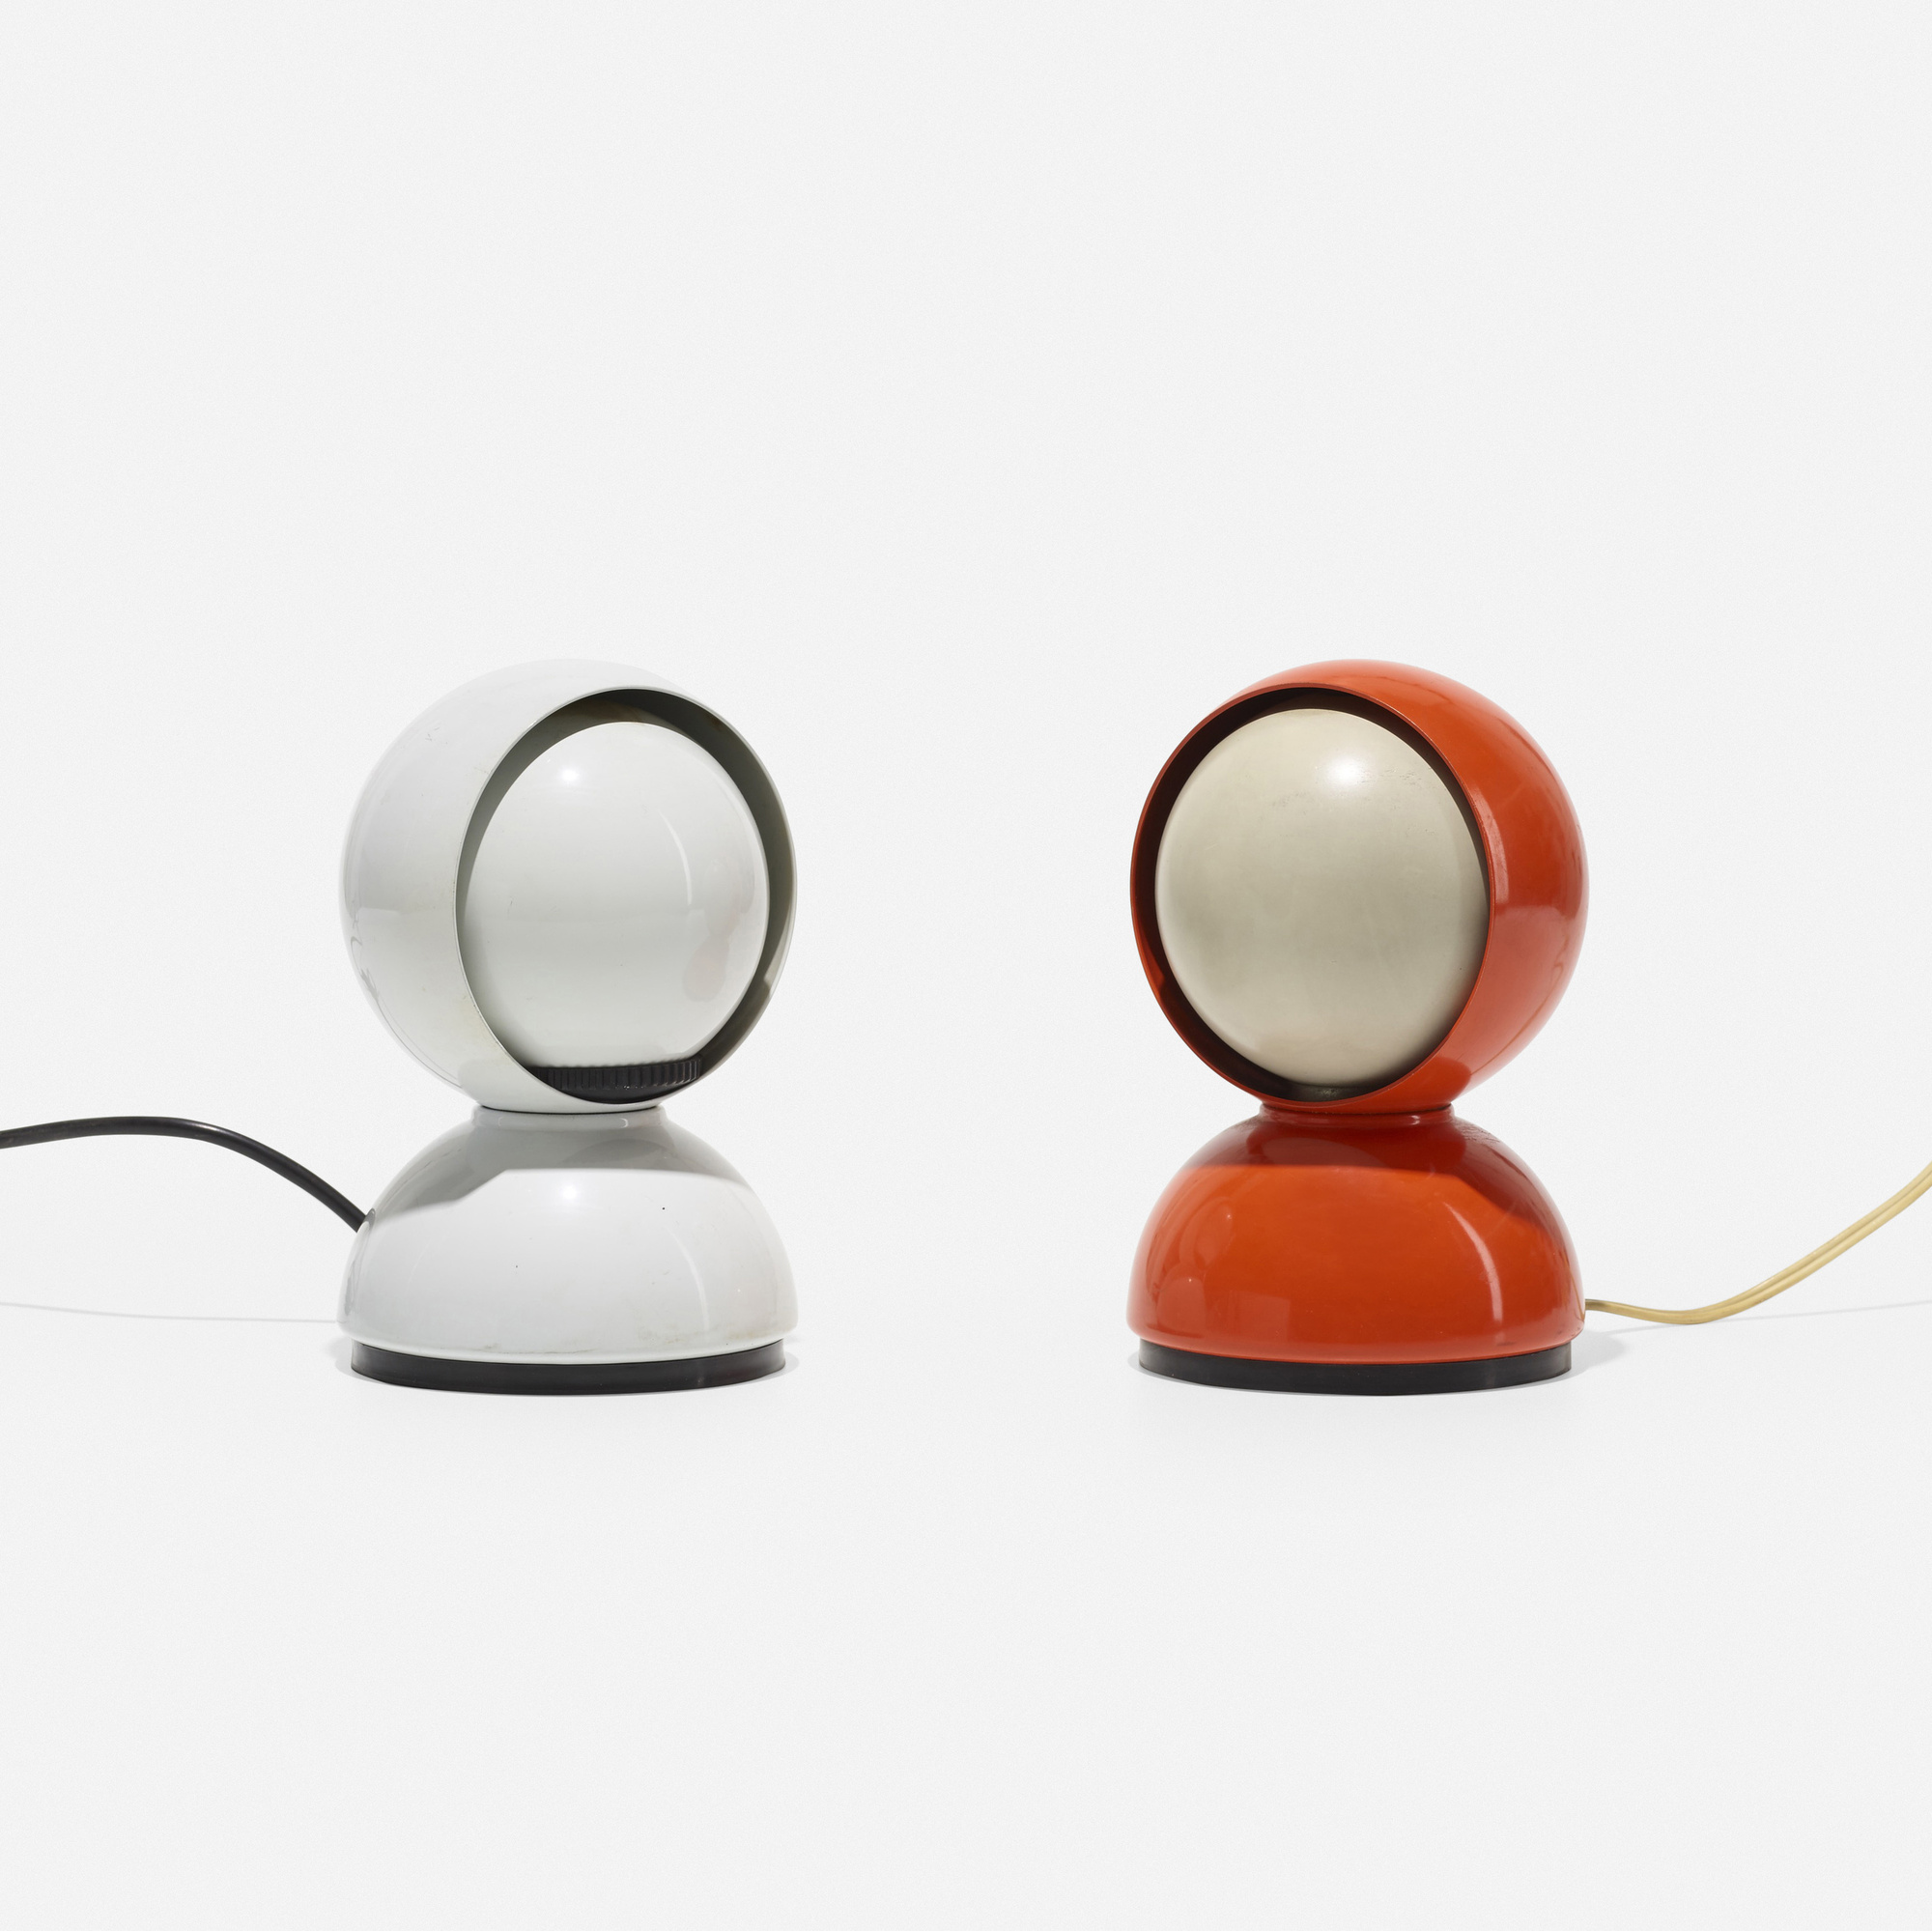 323: Vico Magistretti / Eclisse table lamps, pair (2 of 3)